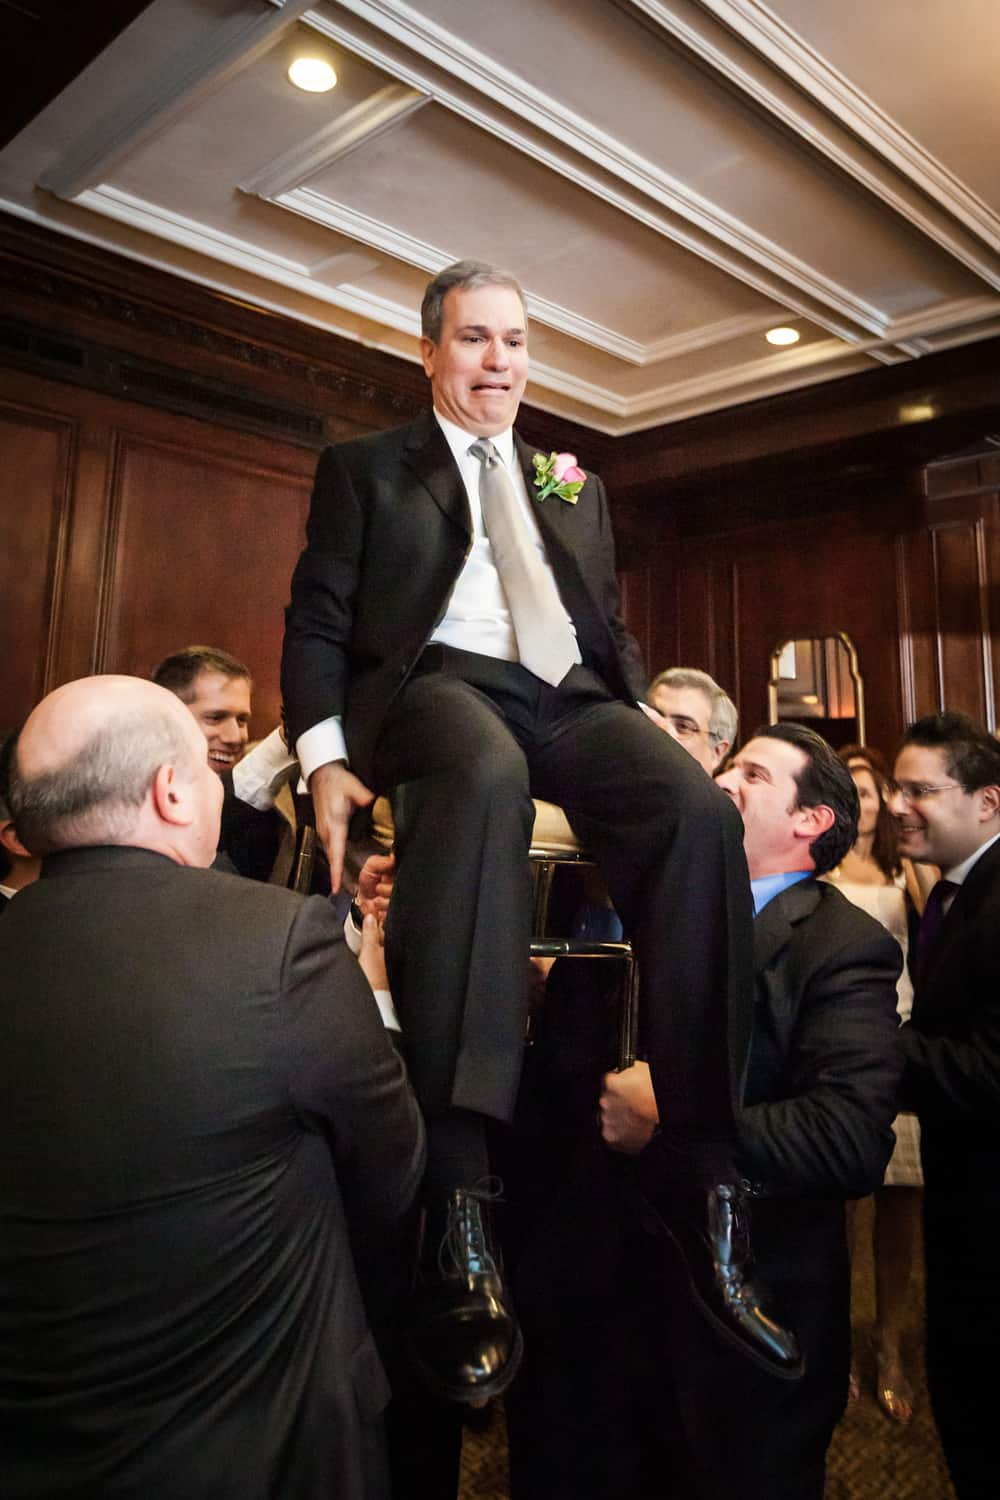 Groom lifted up on chair during hora dance at Harvard Club wedding